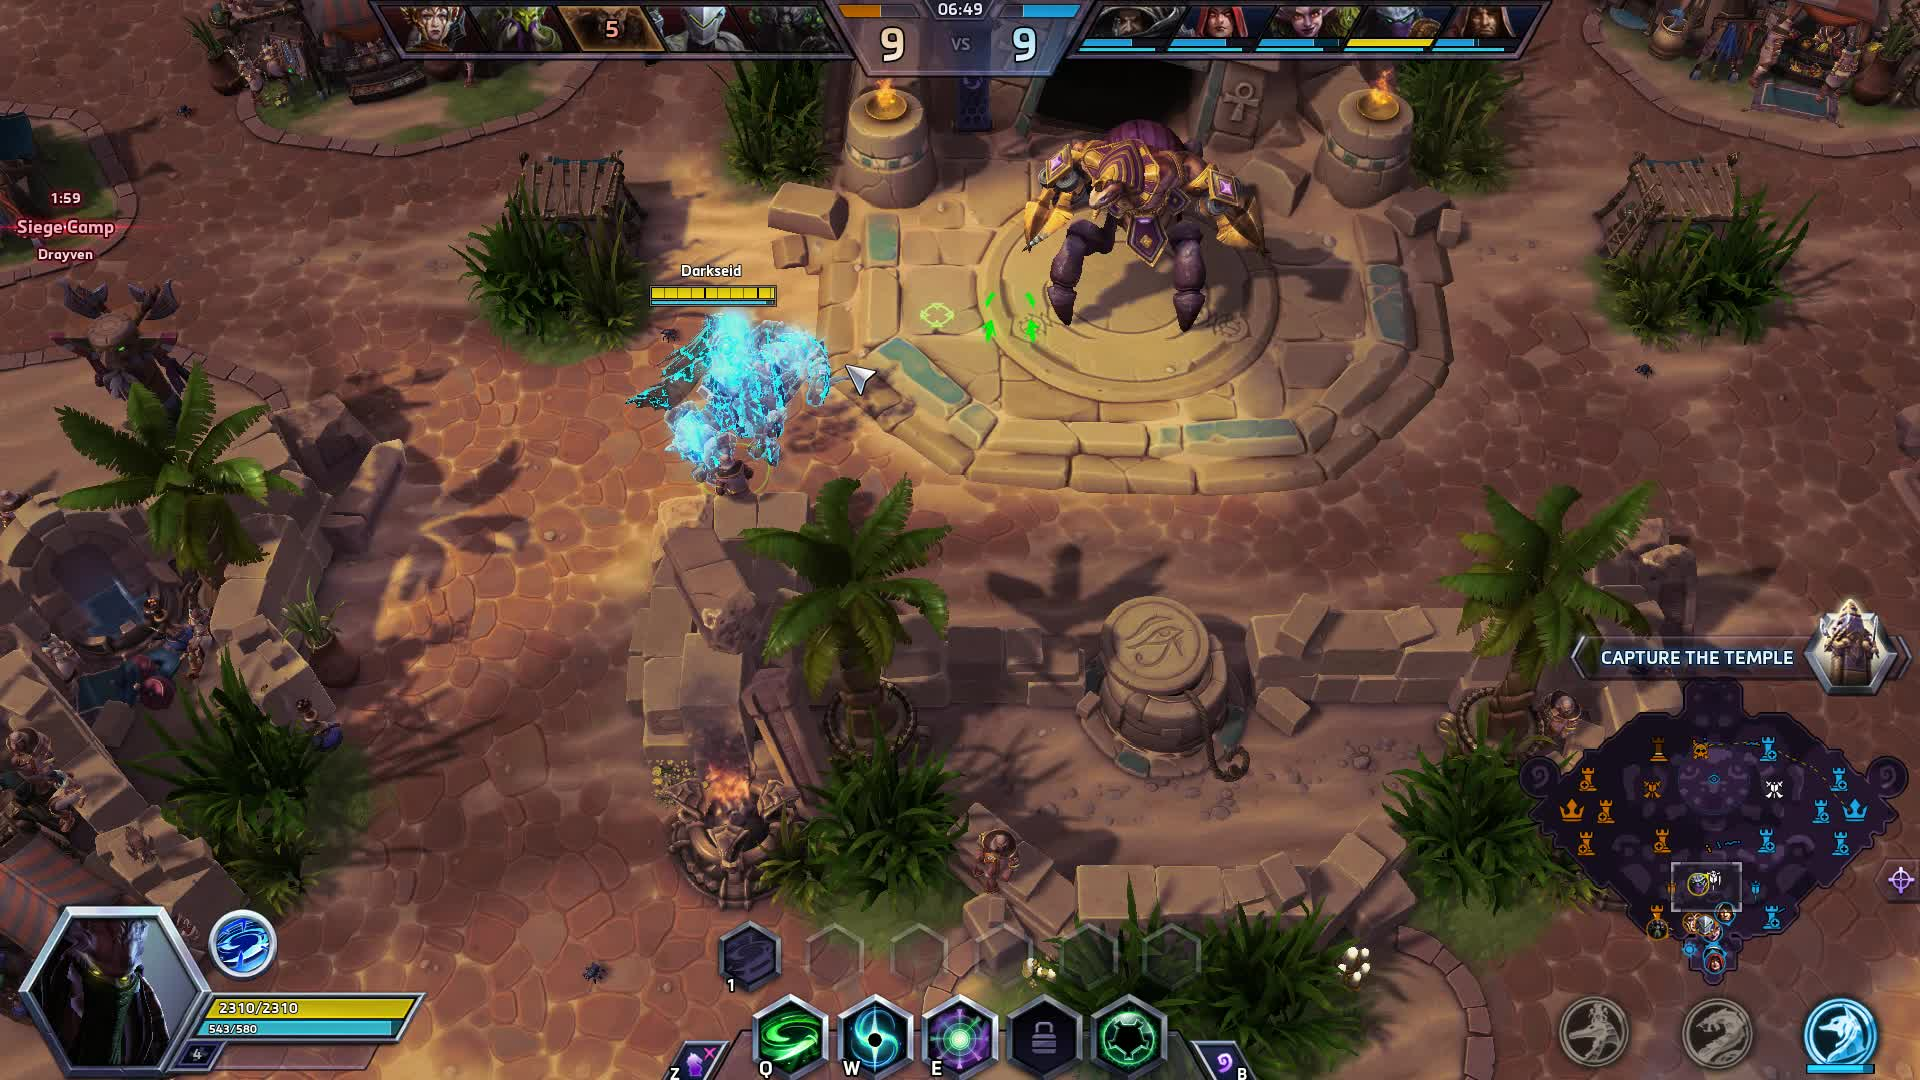 heroesofthestorm, vlc-record-2019-04-07-14h52m44s-Heroes of the Storm 2019.04.07 - 14.37.41.04.DVR.mp4- GIFs